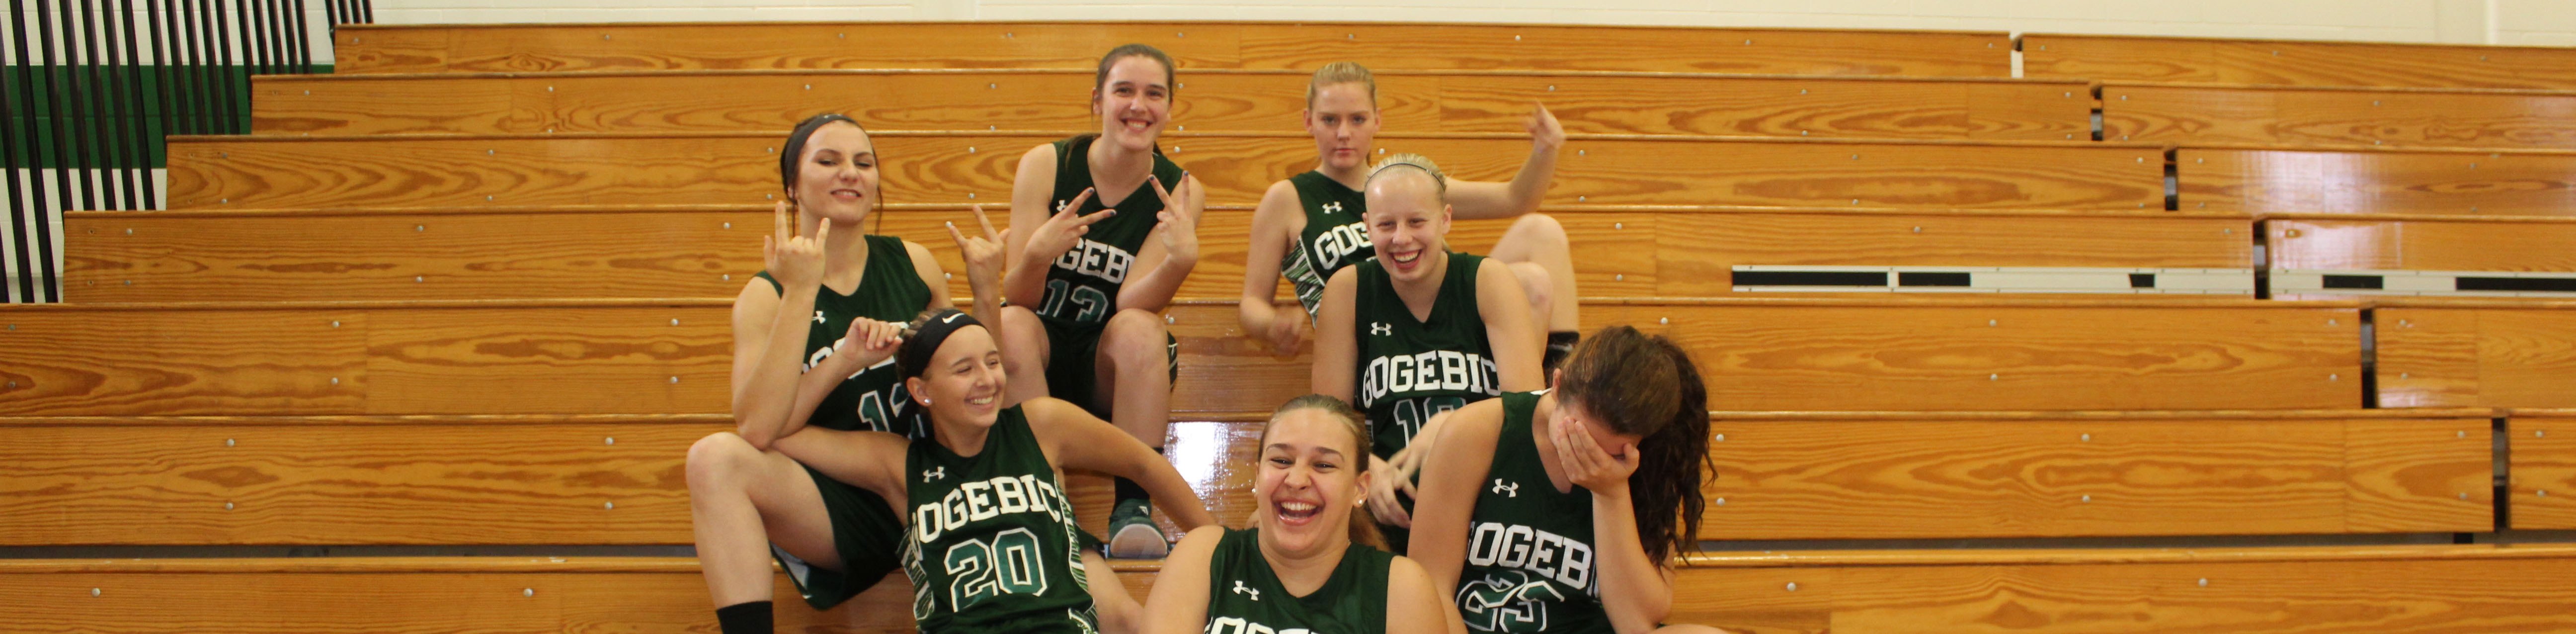 Girls basketball team having fun.